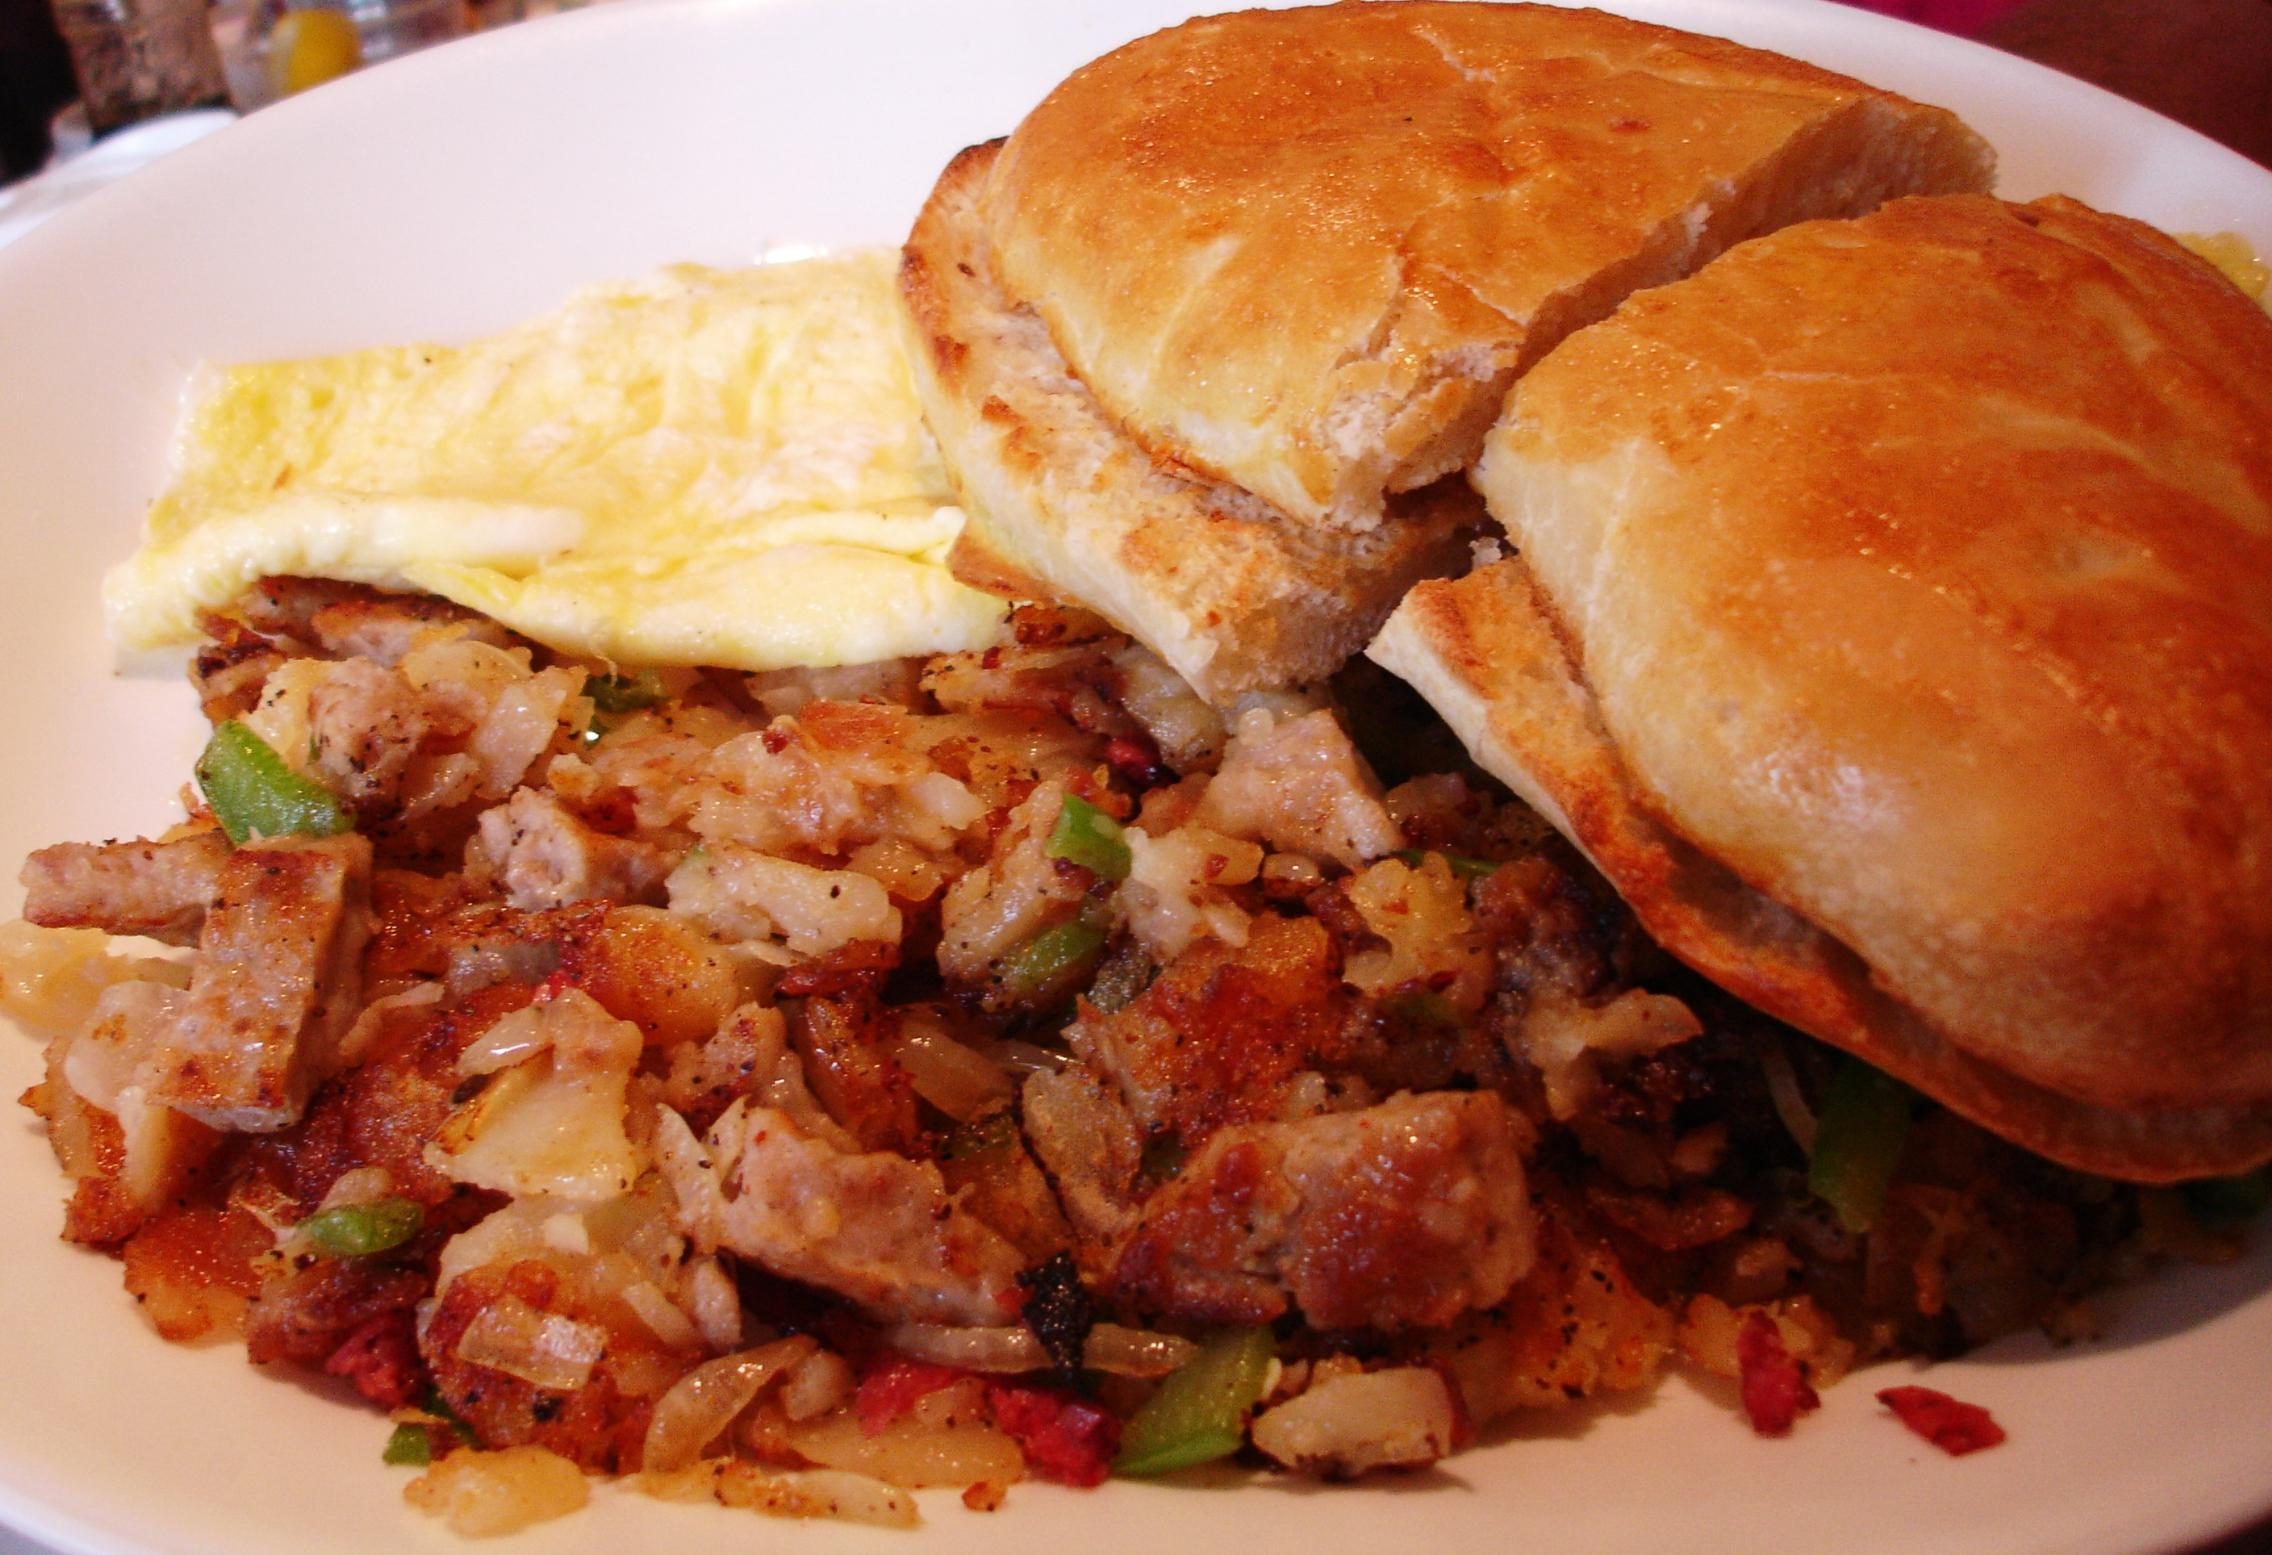 For a change of pace from the usual corned beef, try Woody's sausage hash.